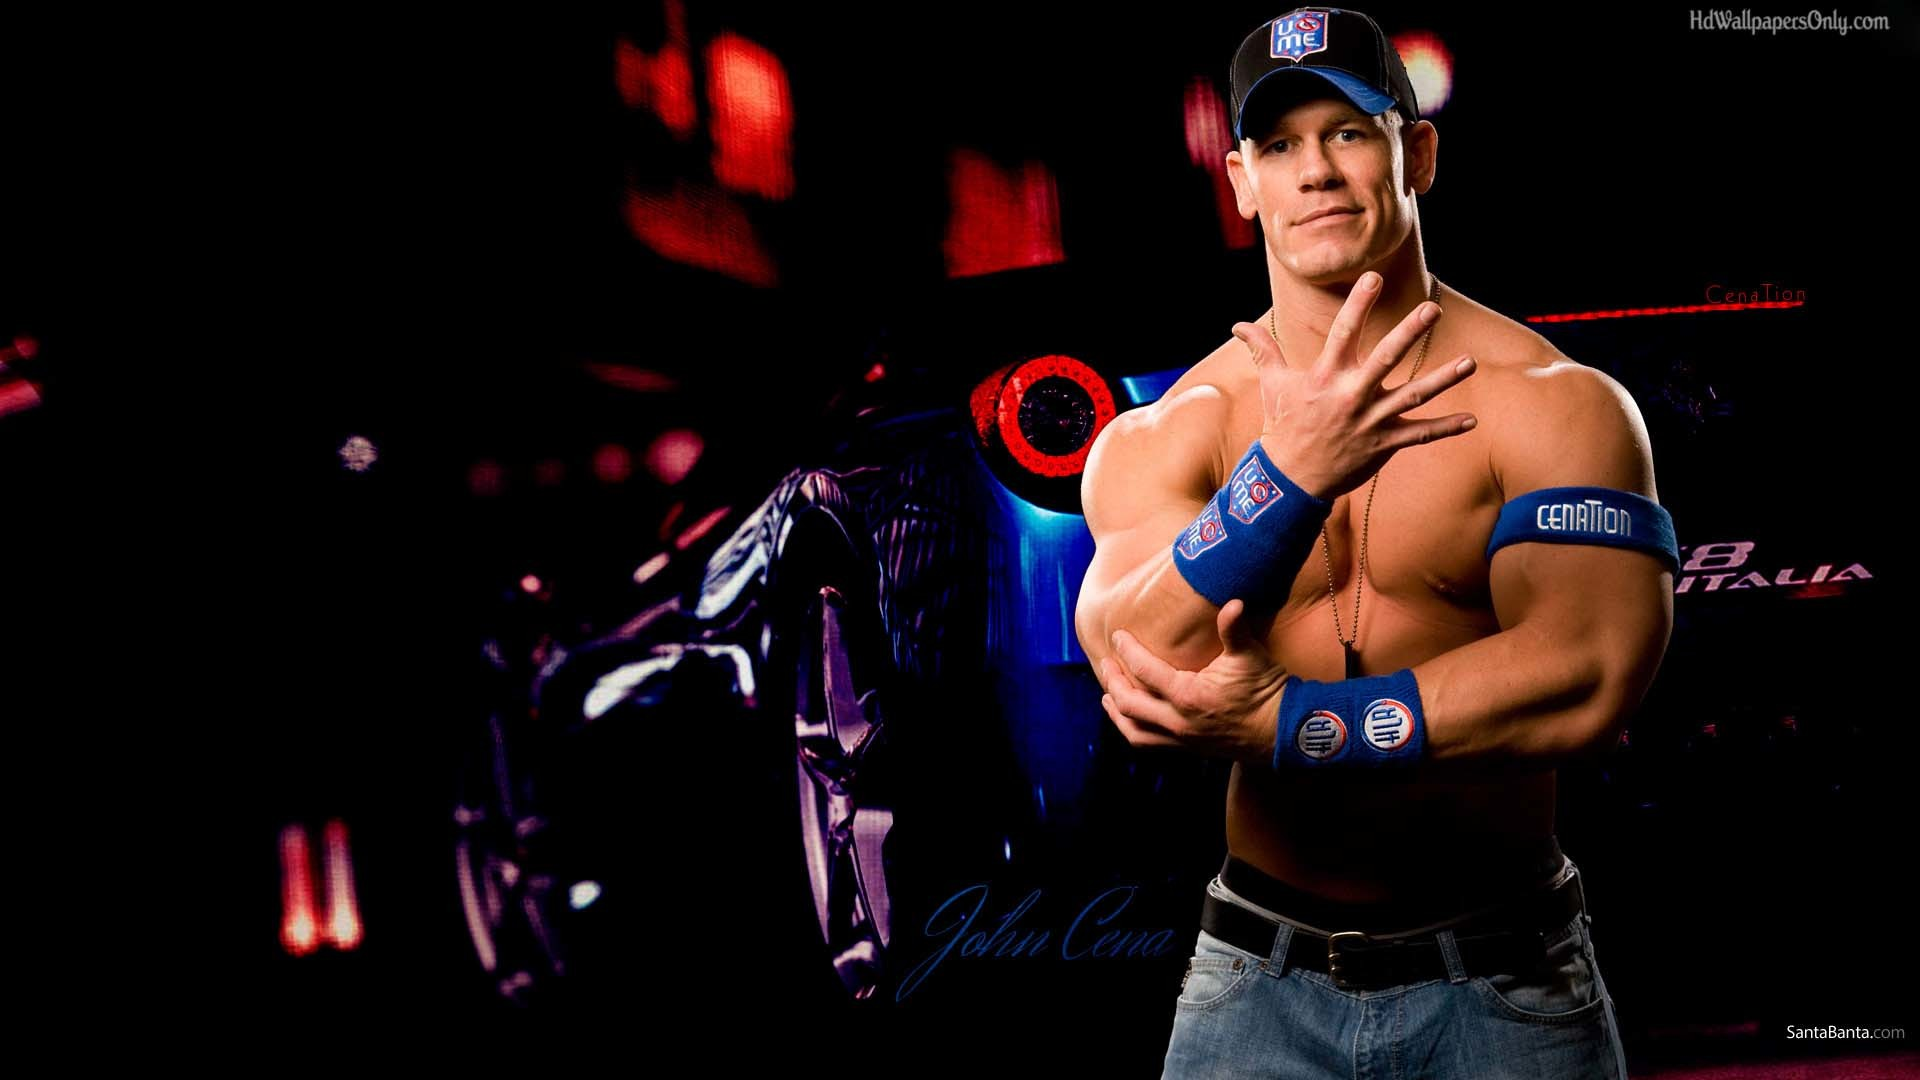 1920x1080 WWE John Cena Wallpapers 2016 HD - Wallpaper Cave